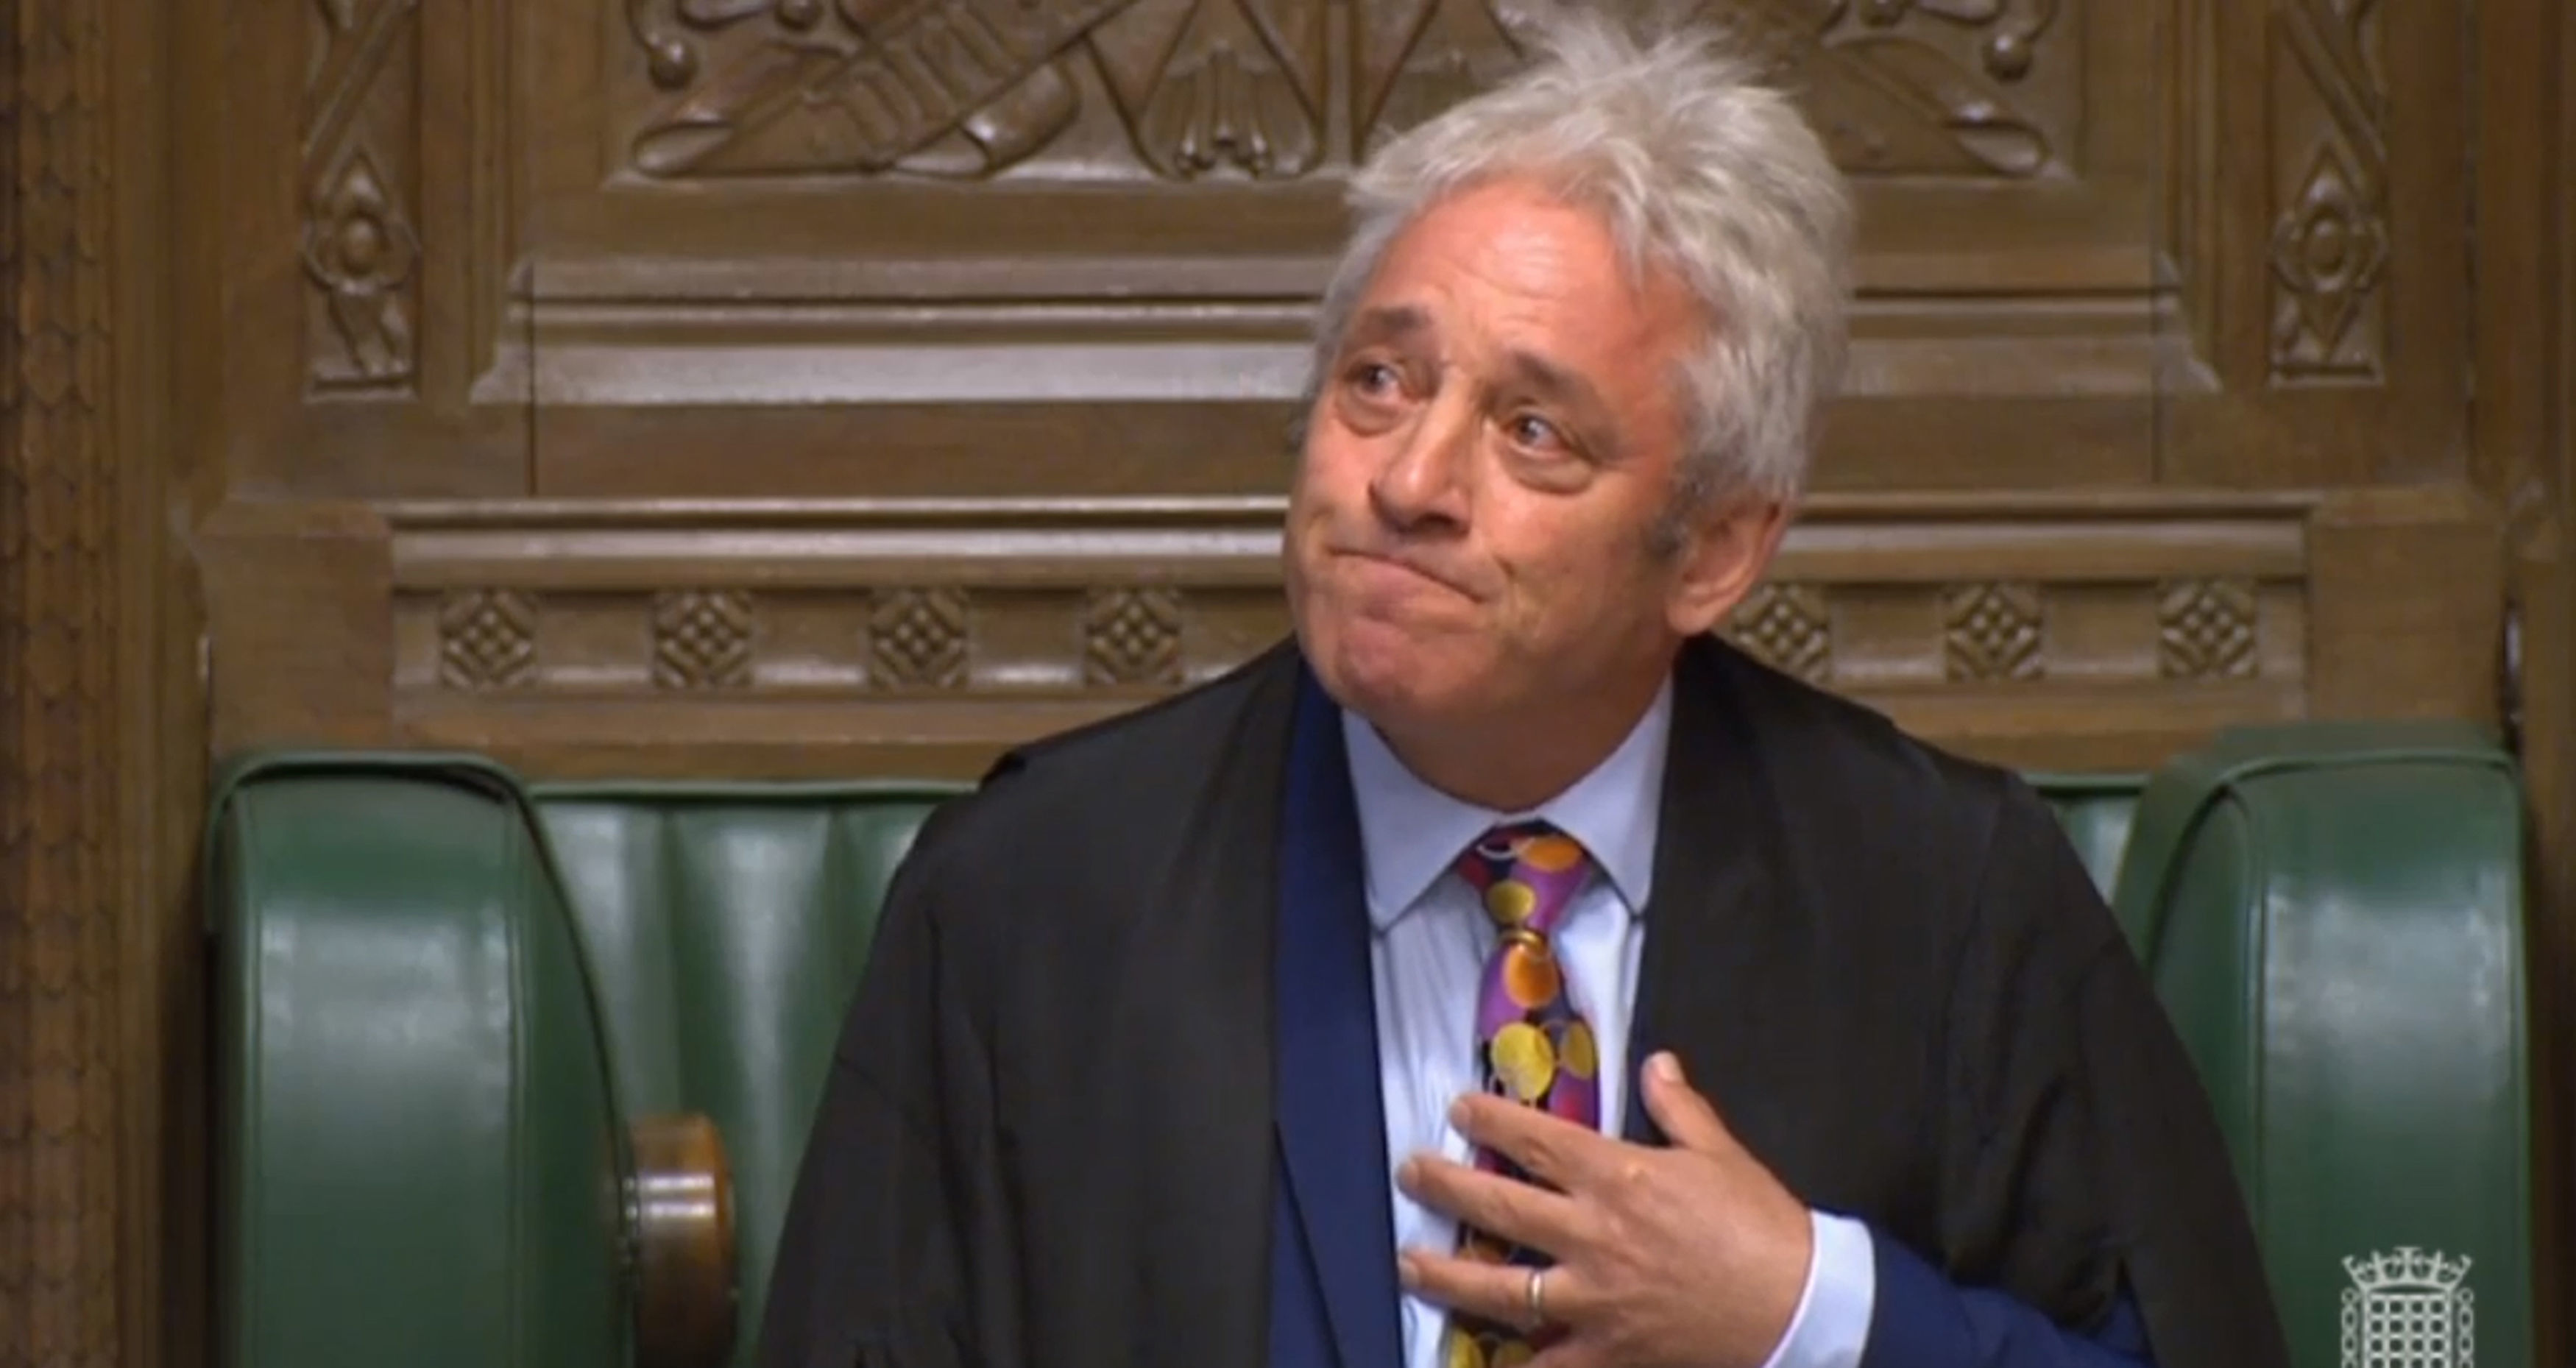 John Bercow looks up to his family as he announces his plan to stand down.